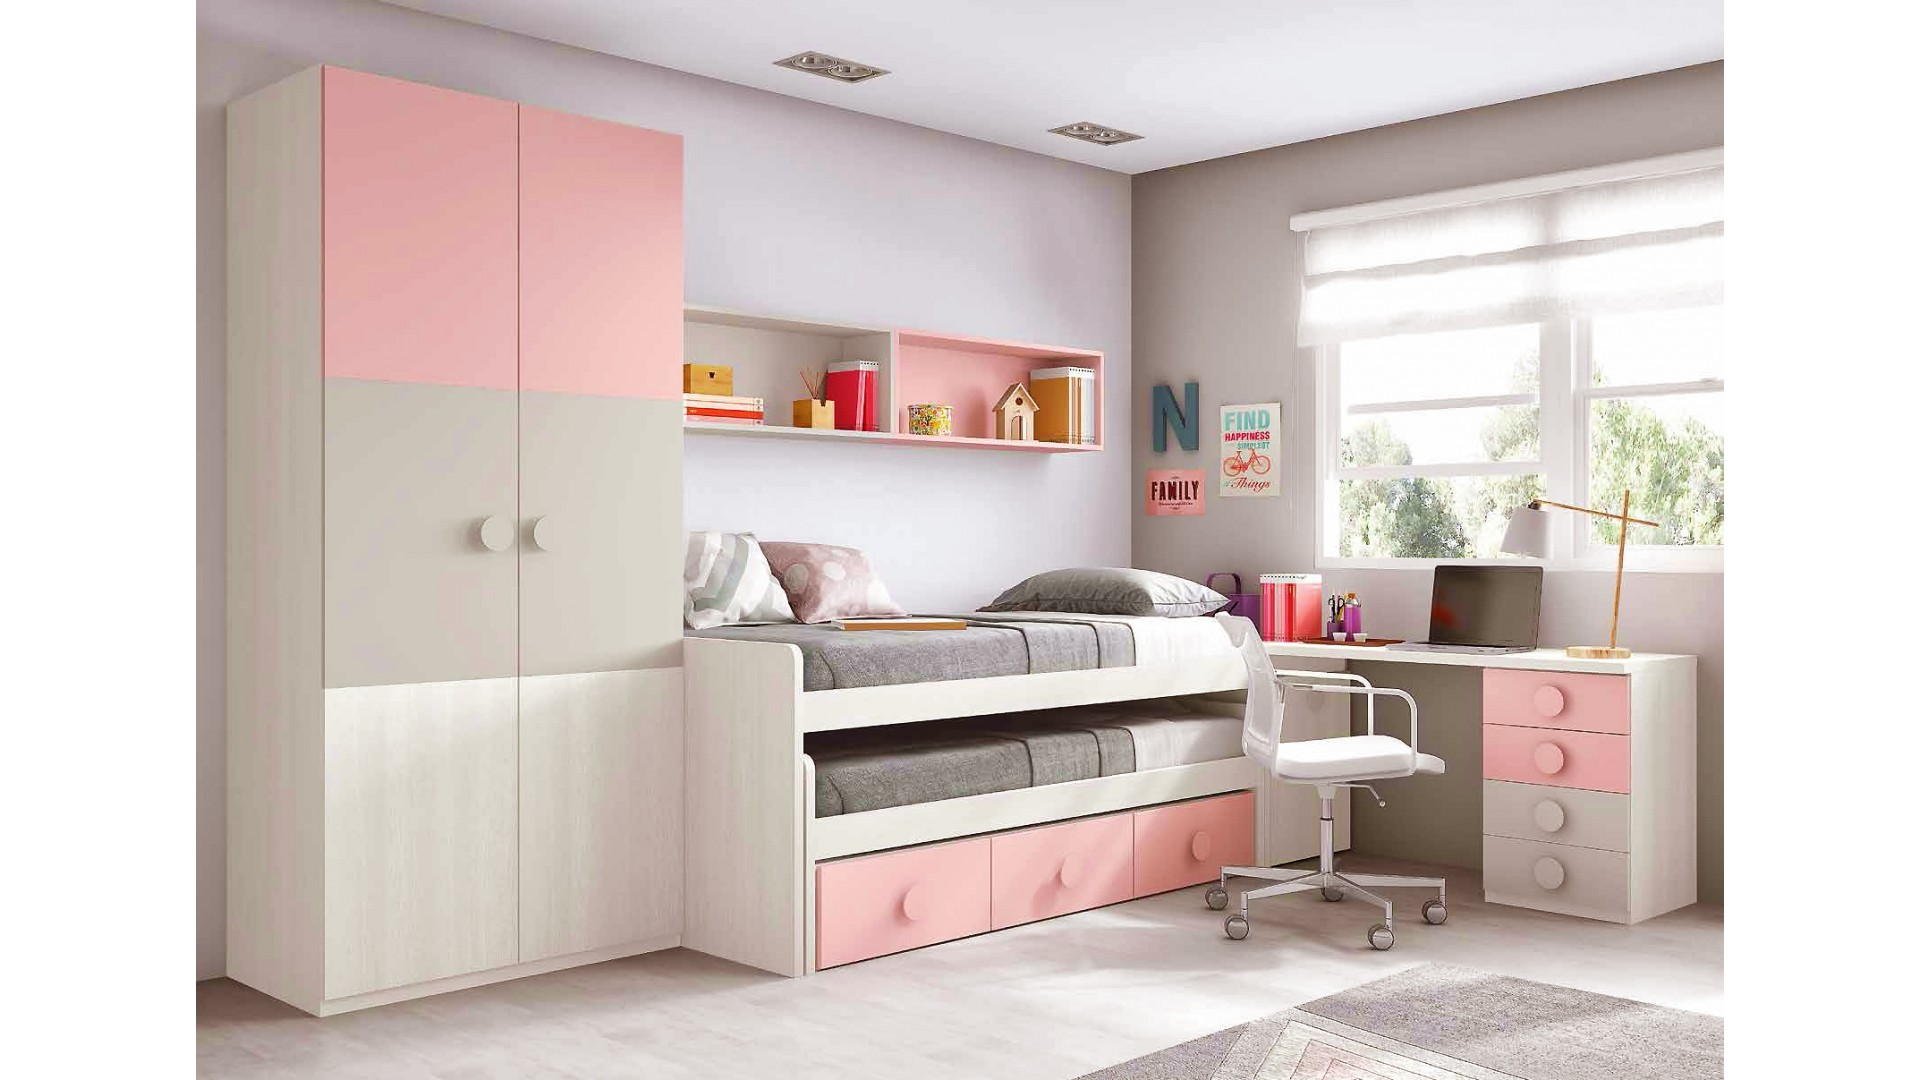 chambre ado fille astucieuse avec son lit gigogne glicerio so nuit. Black Bedroom Furniture Sets. Home Design Ideas